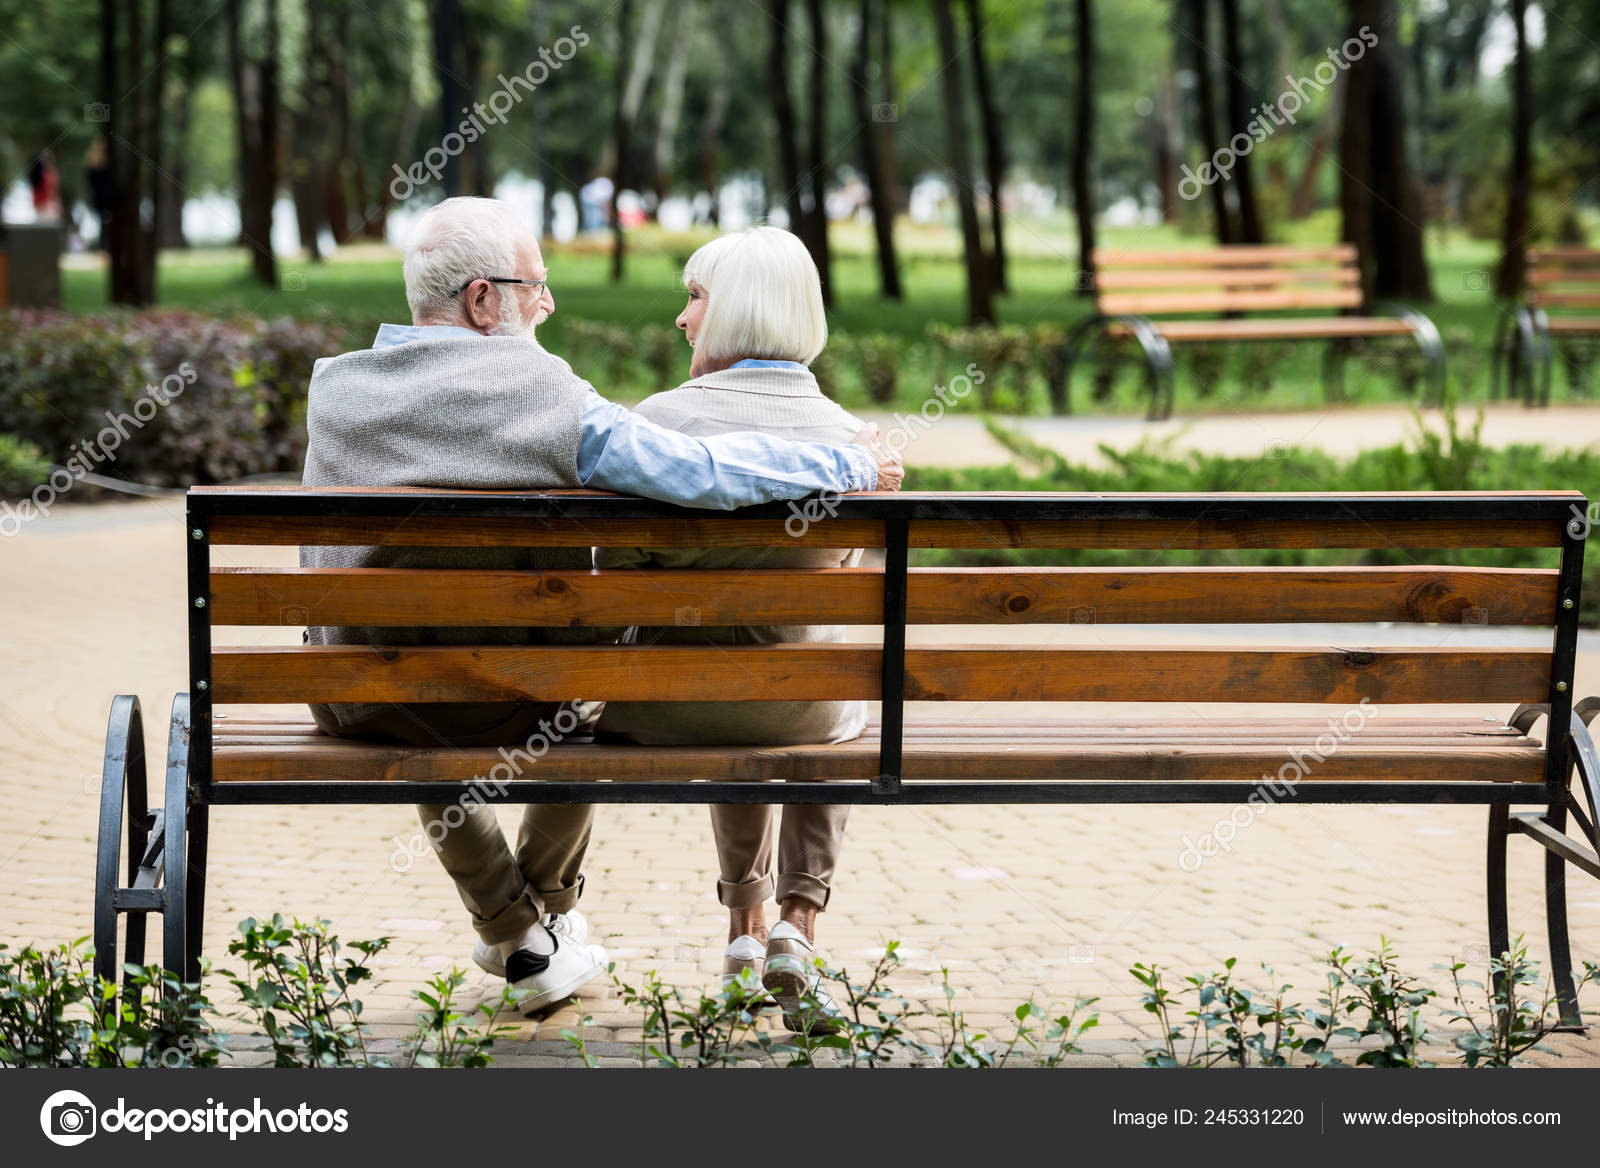 Swell Senior Couple Sitting Wooden Bench Park Stock Photo Ocoug Best Dining Table And Chair Ideas Images Ocougorg